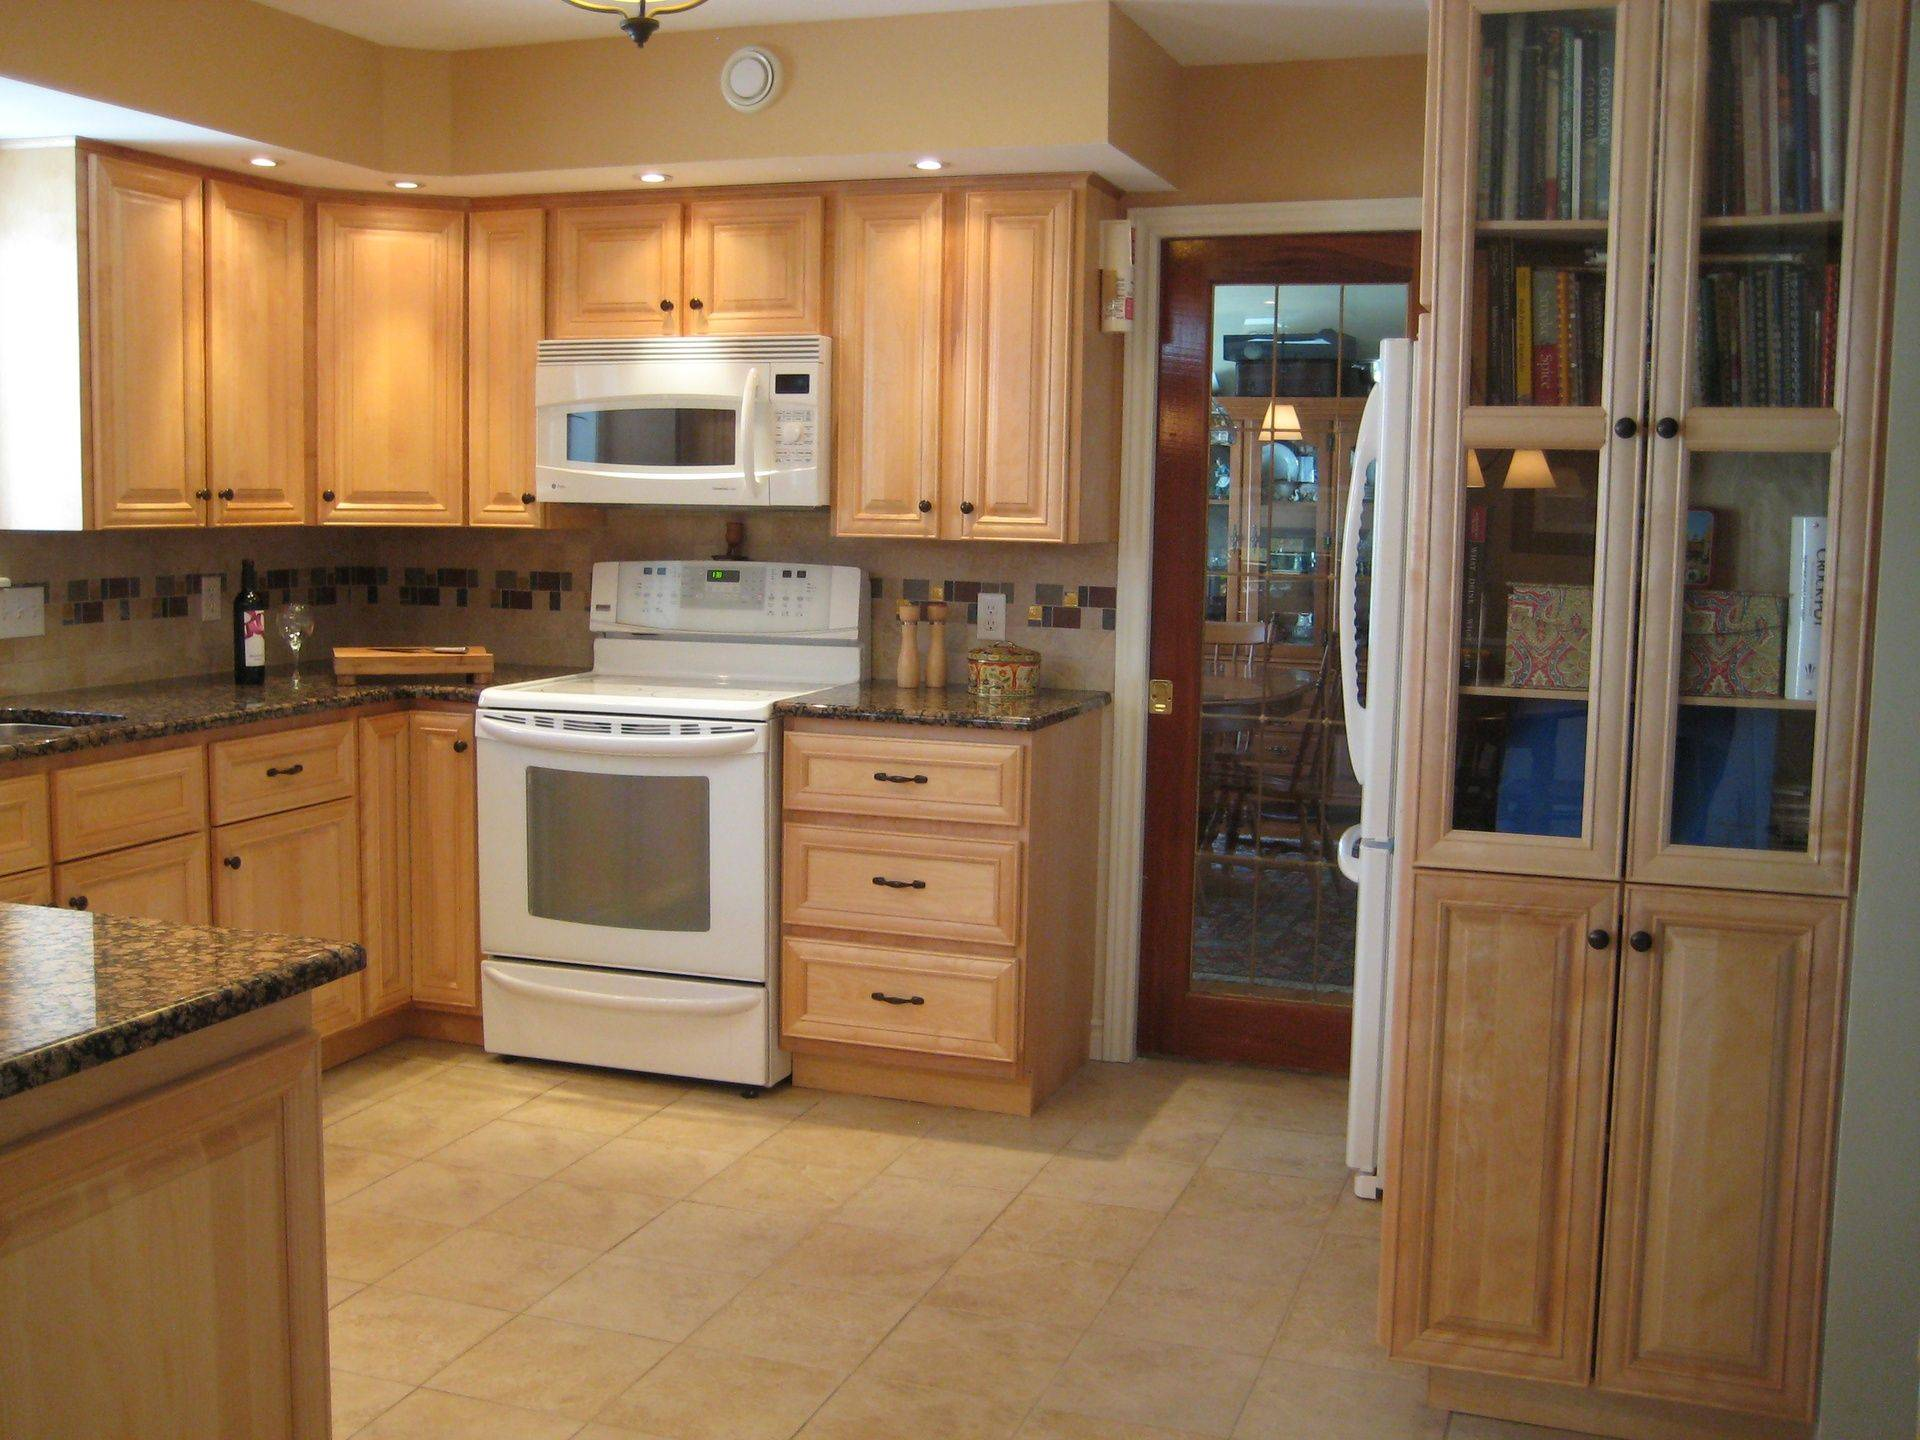 resurface kitchen cabinets how to estimate average kitchen cabinet refacing cost 1920